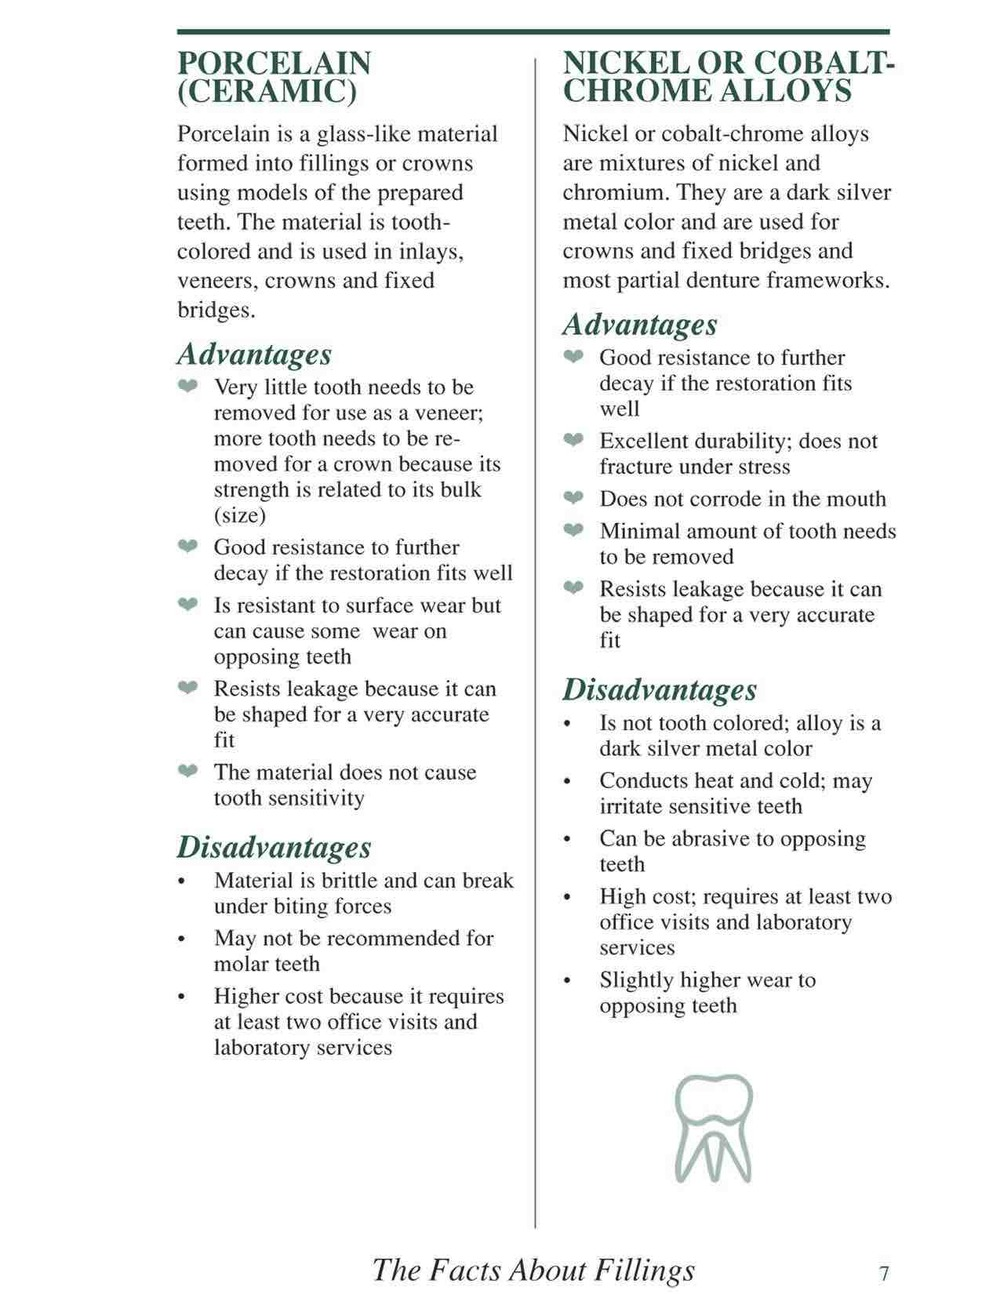 Dental Materials Fact Sheet-7.jpg